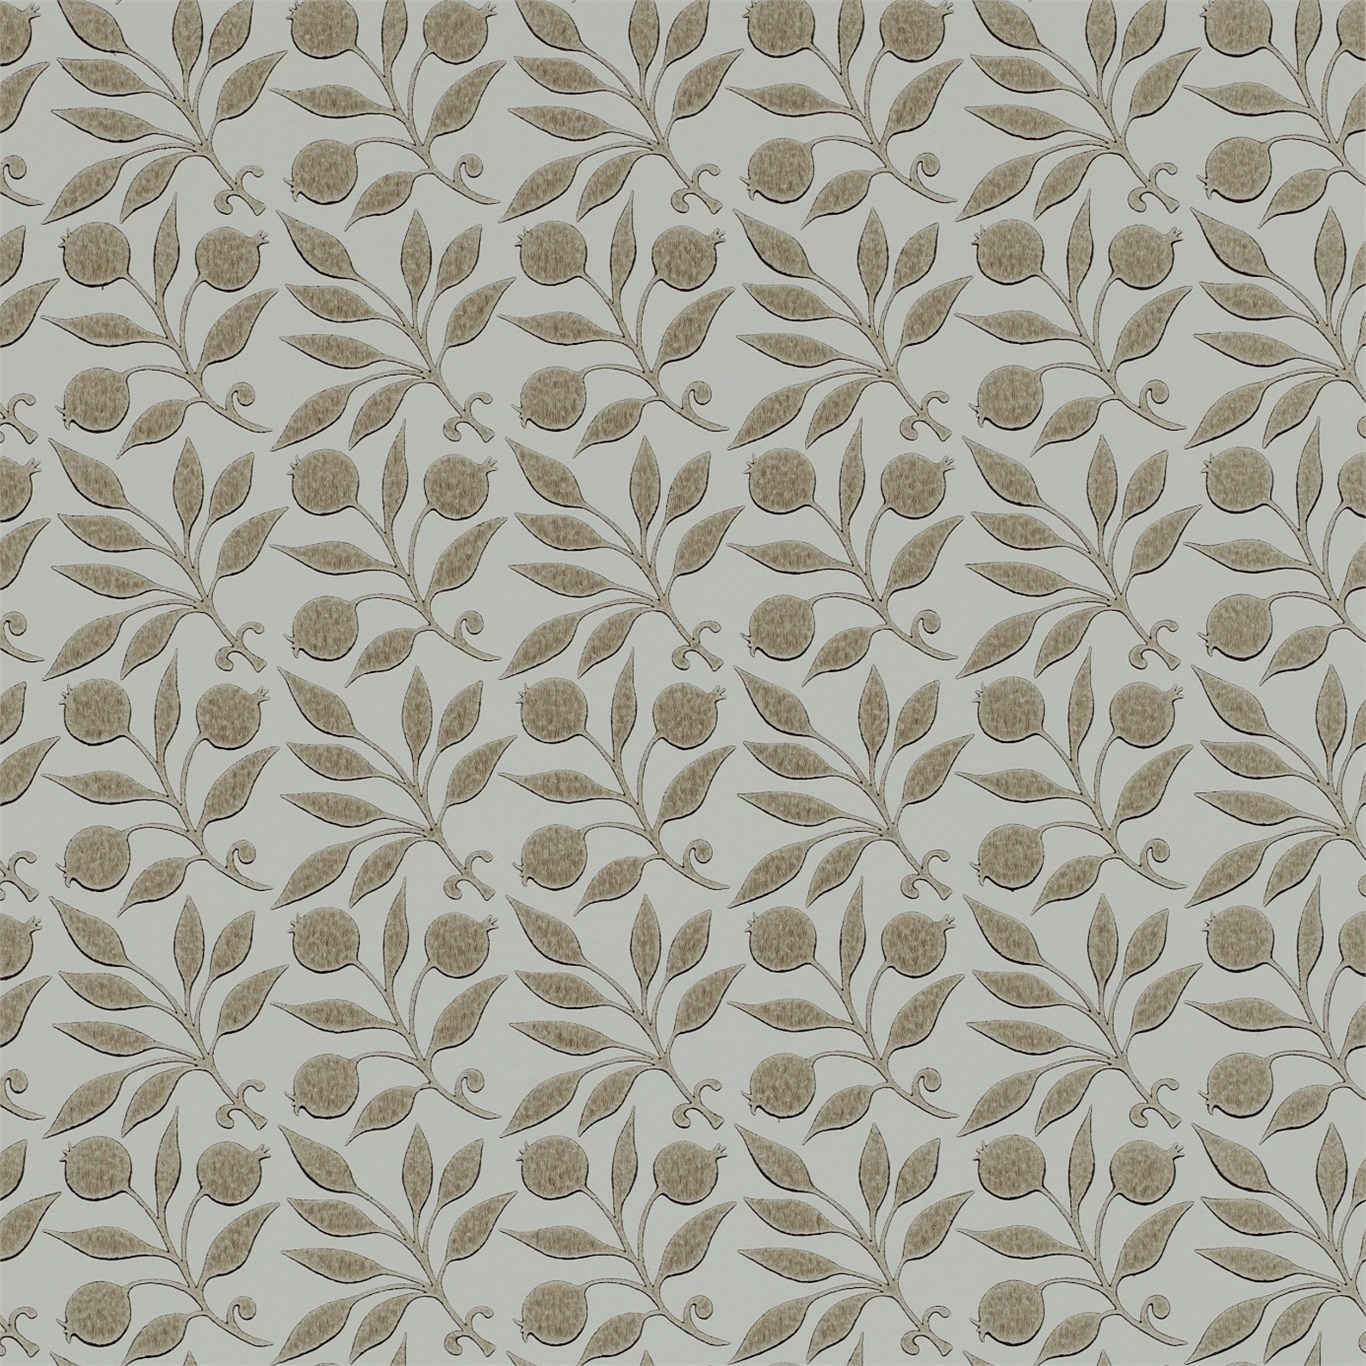 Image of Morris & Co Rosehip Linen Wallpaper 214709